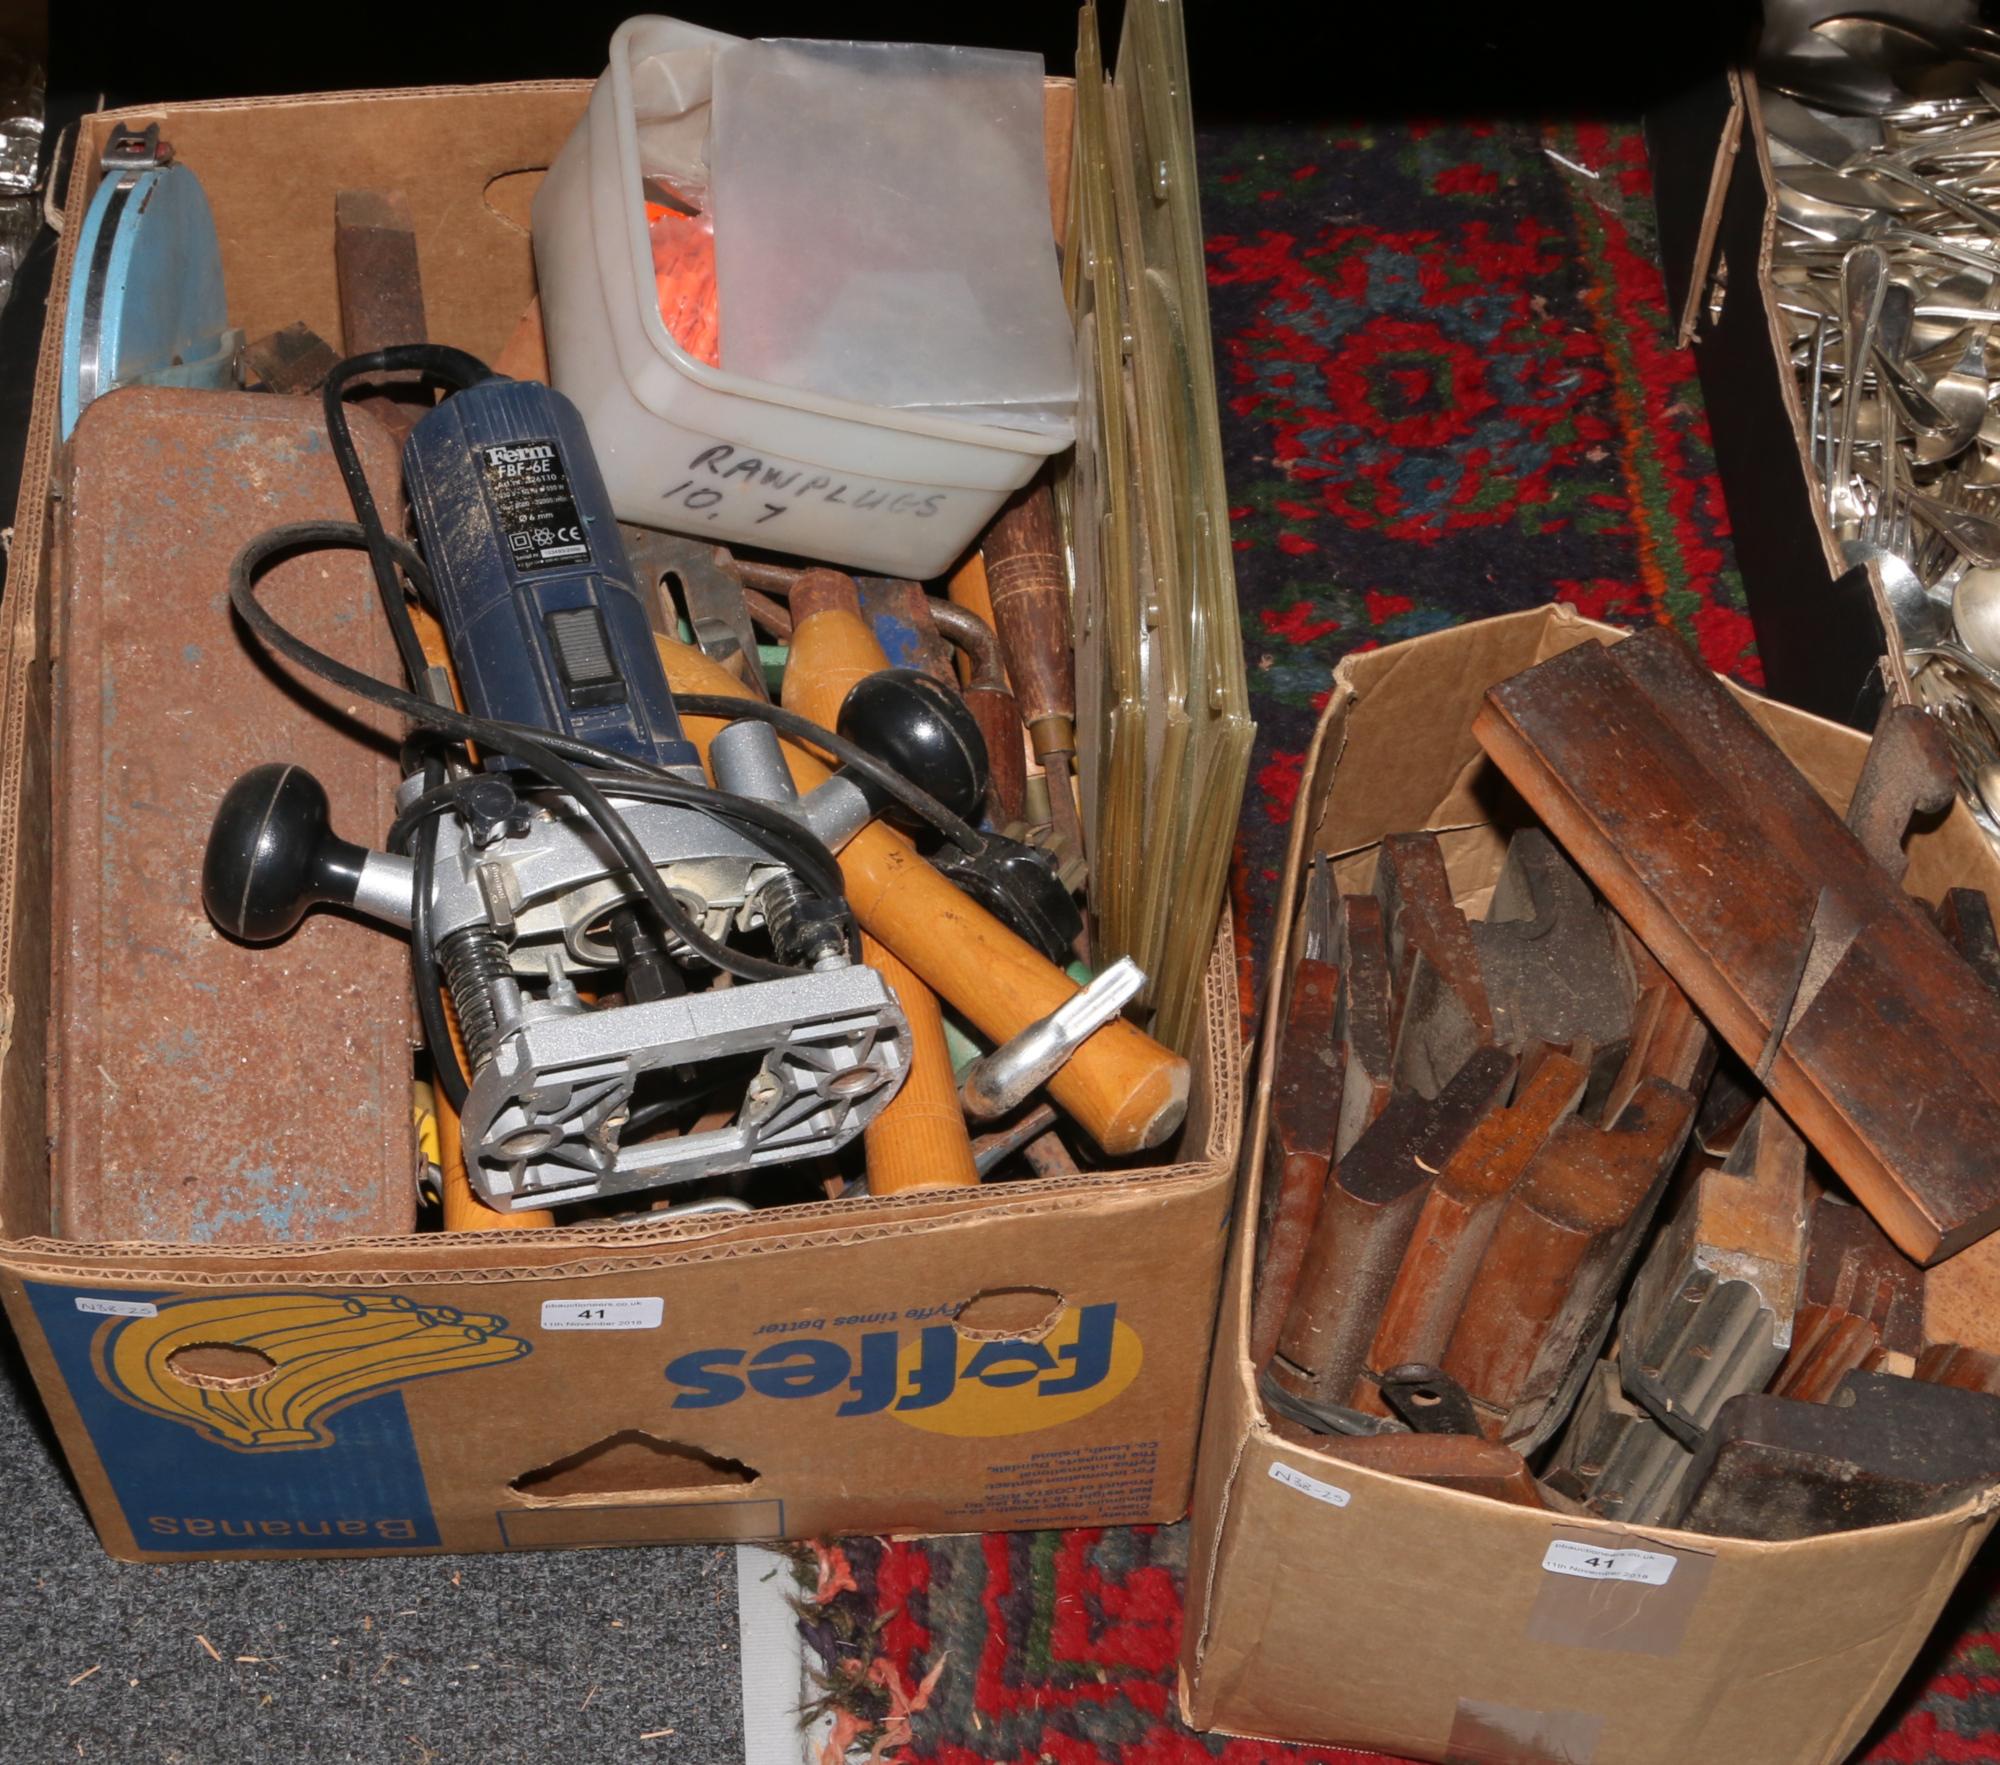 Lot 41 - Two boxes of tools to include FFRM FBF - 6E router, smoothing planes, circular saw blades, wood